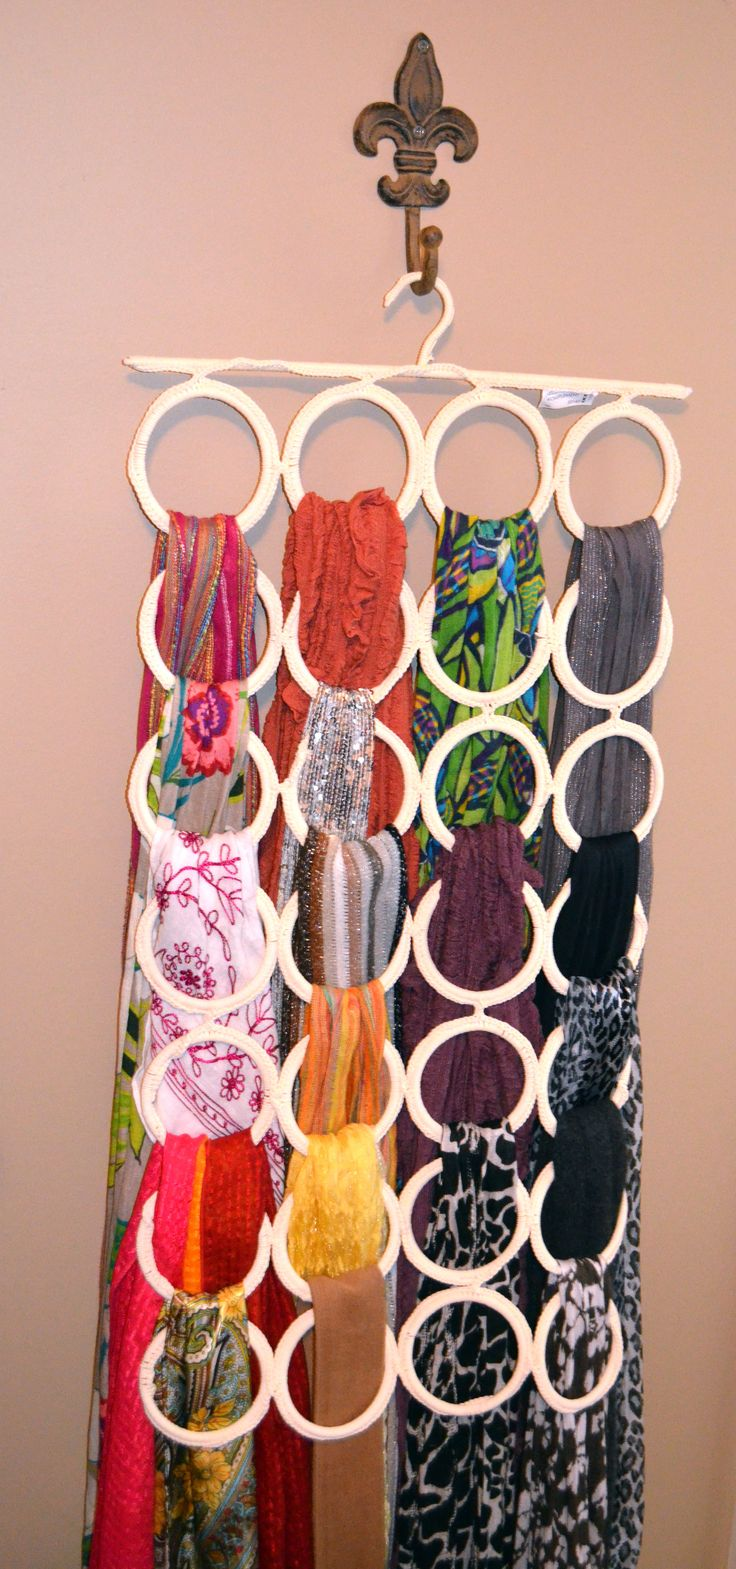 25+ best ideas about Scarf hanger on Pinterest